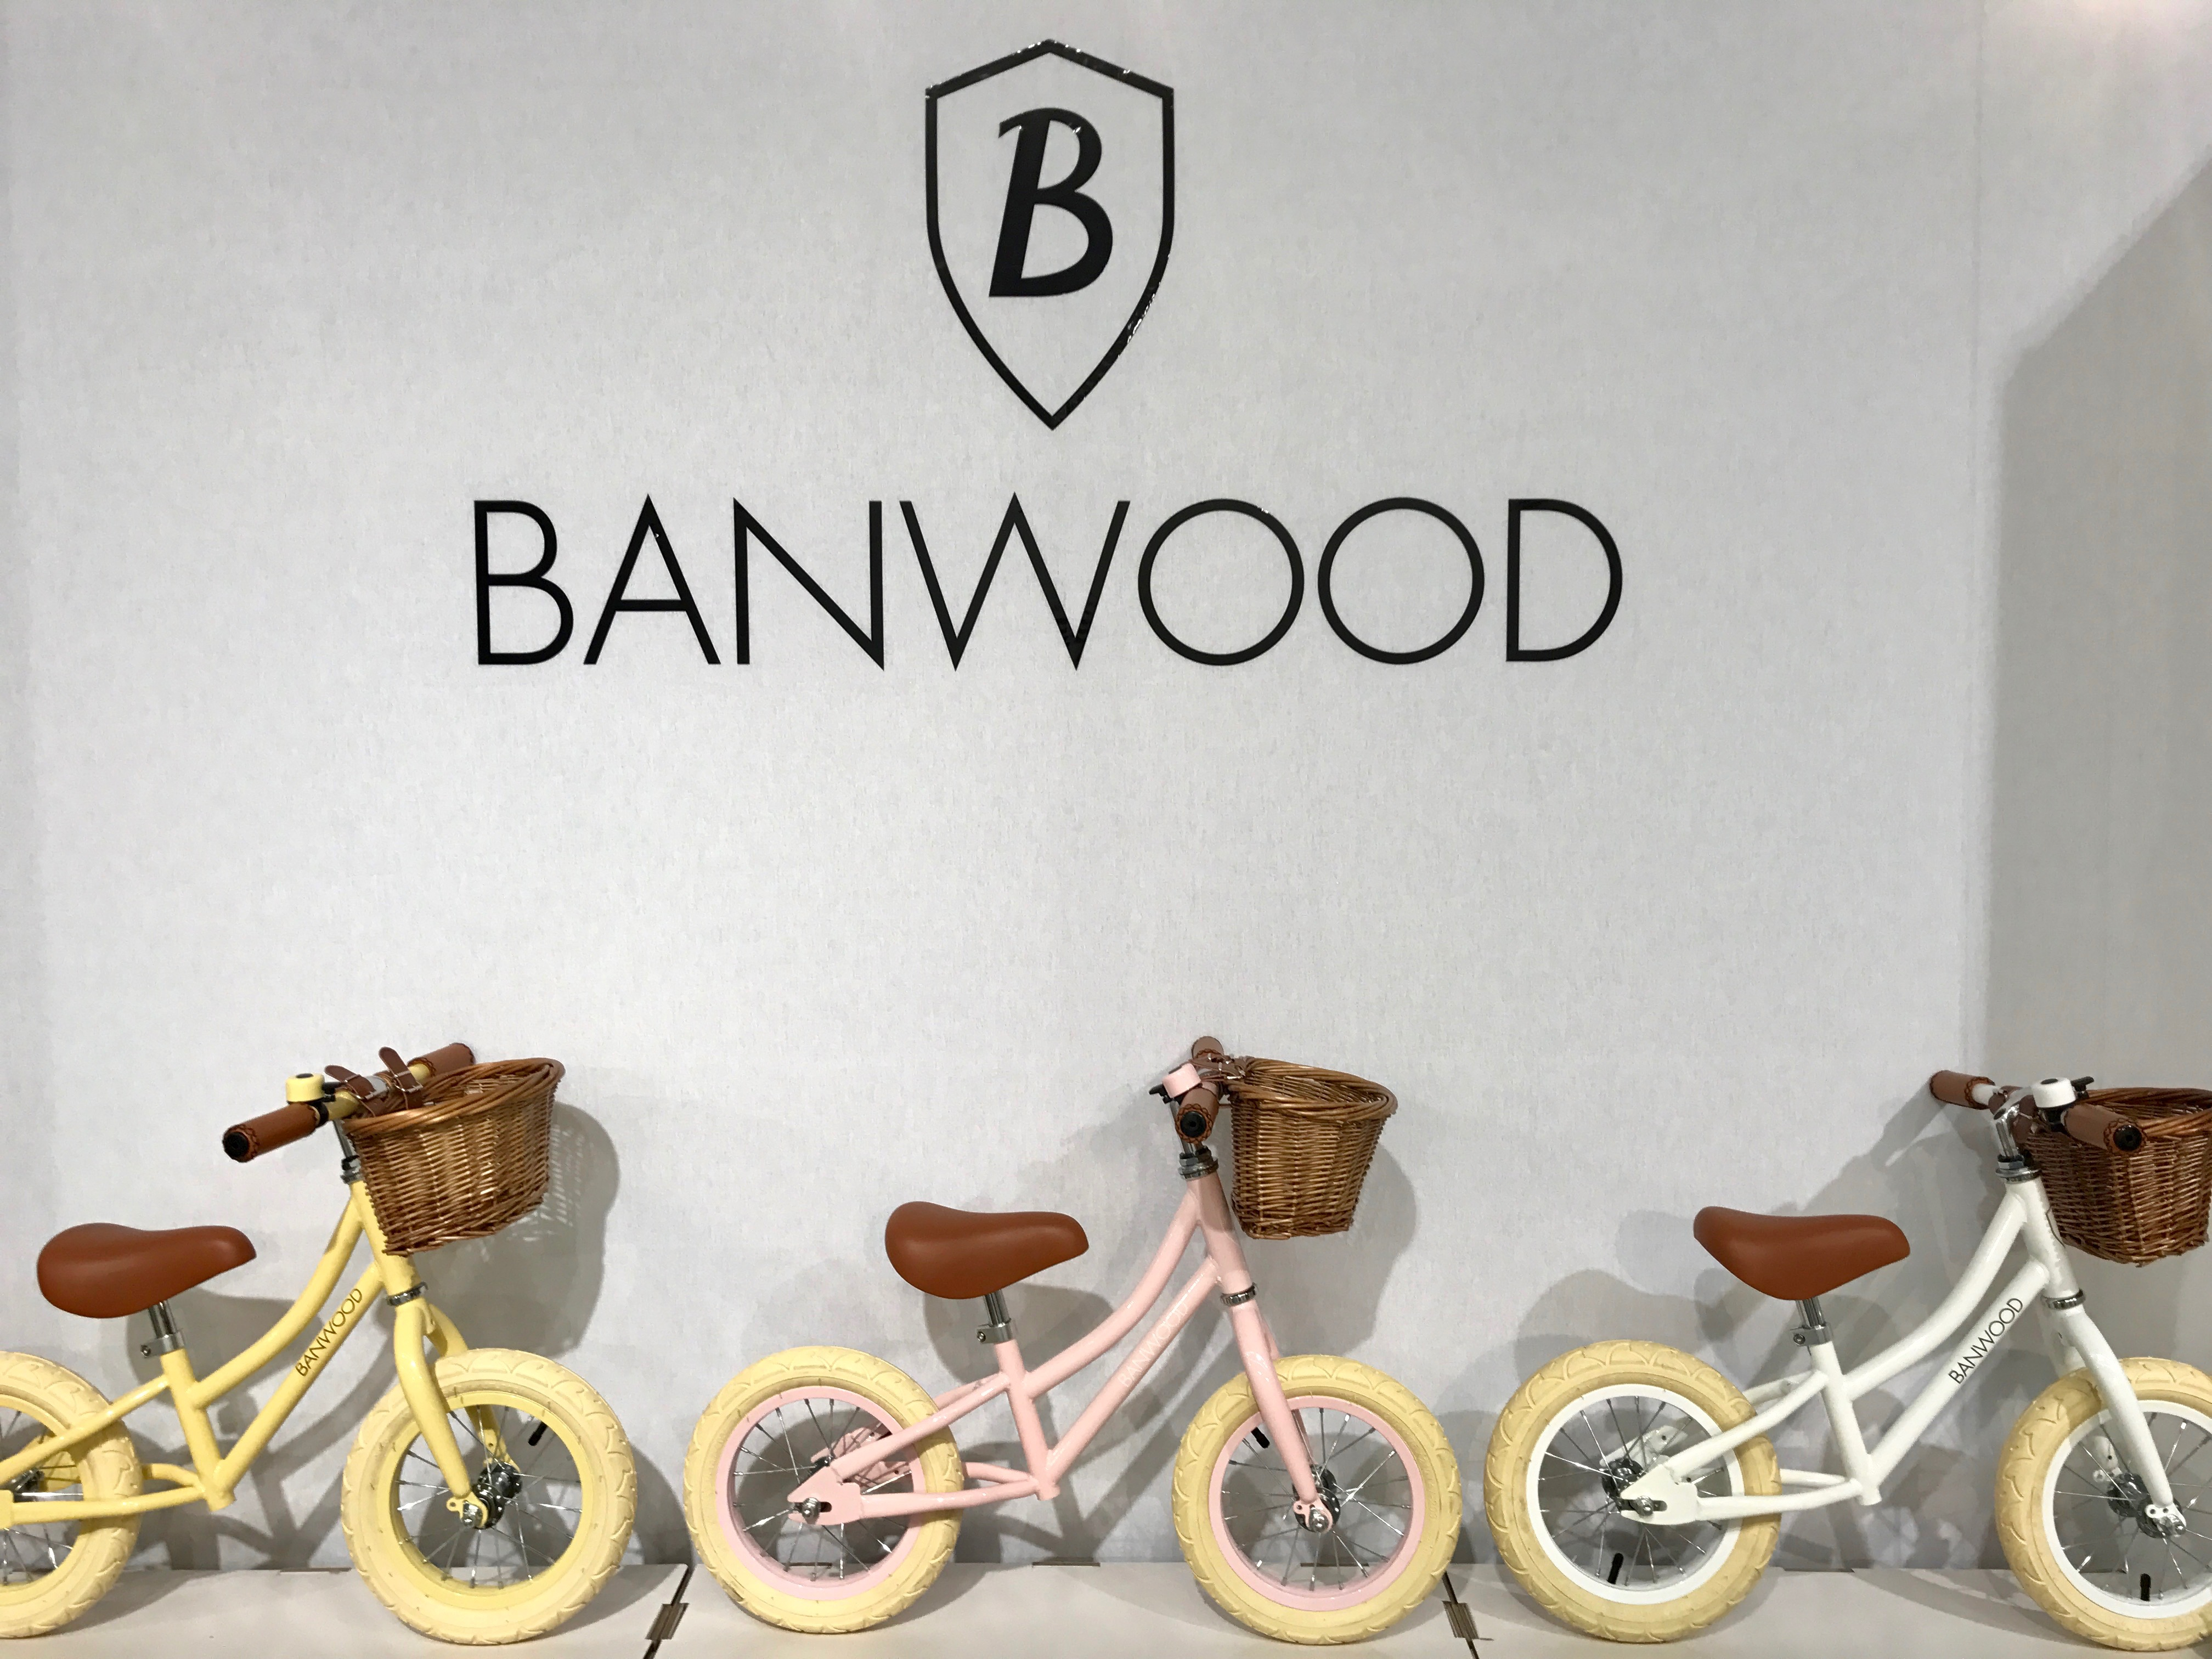 Banwood balance bikes One to Watch Winners Design Playtime Paris